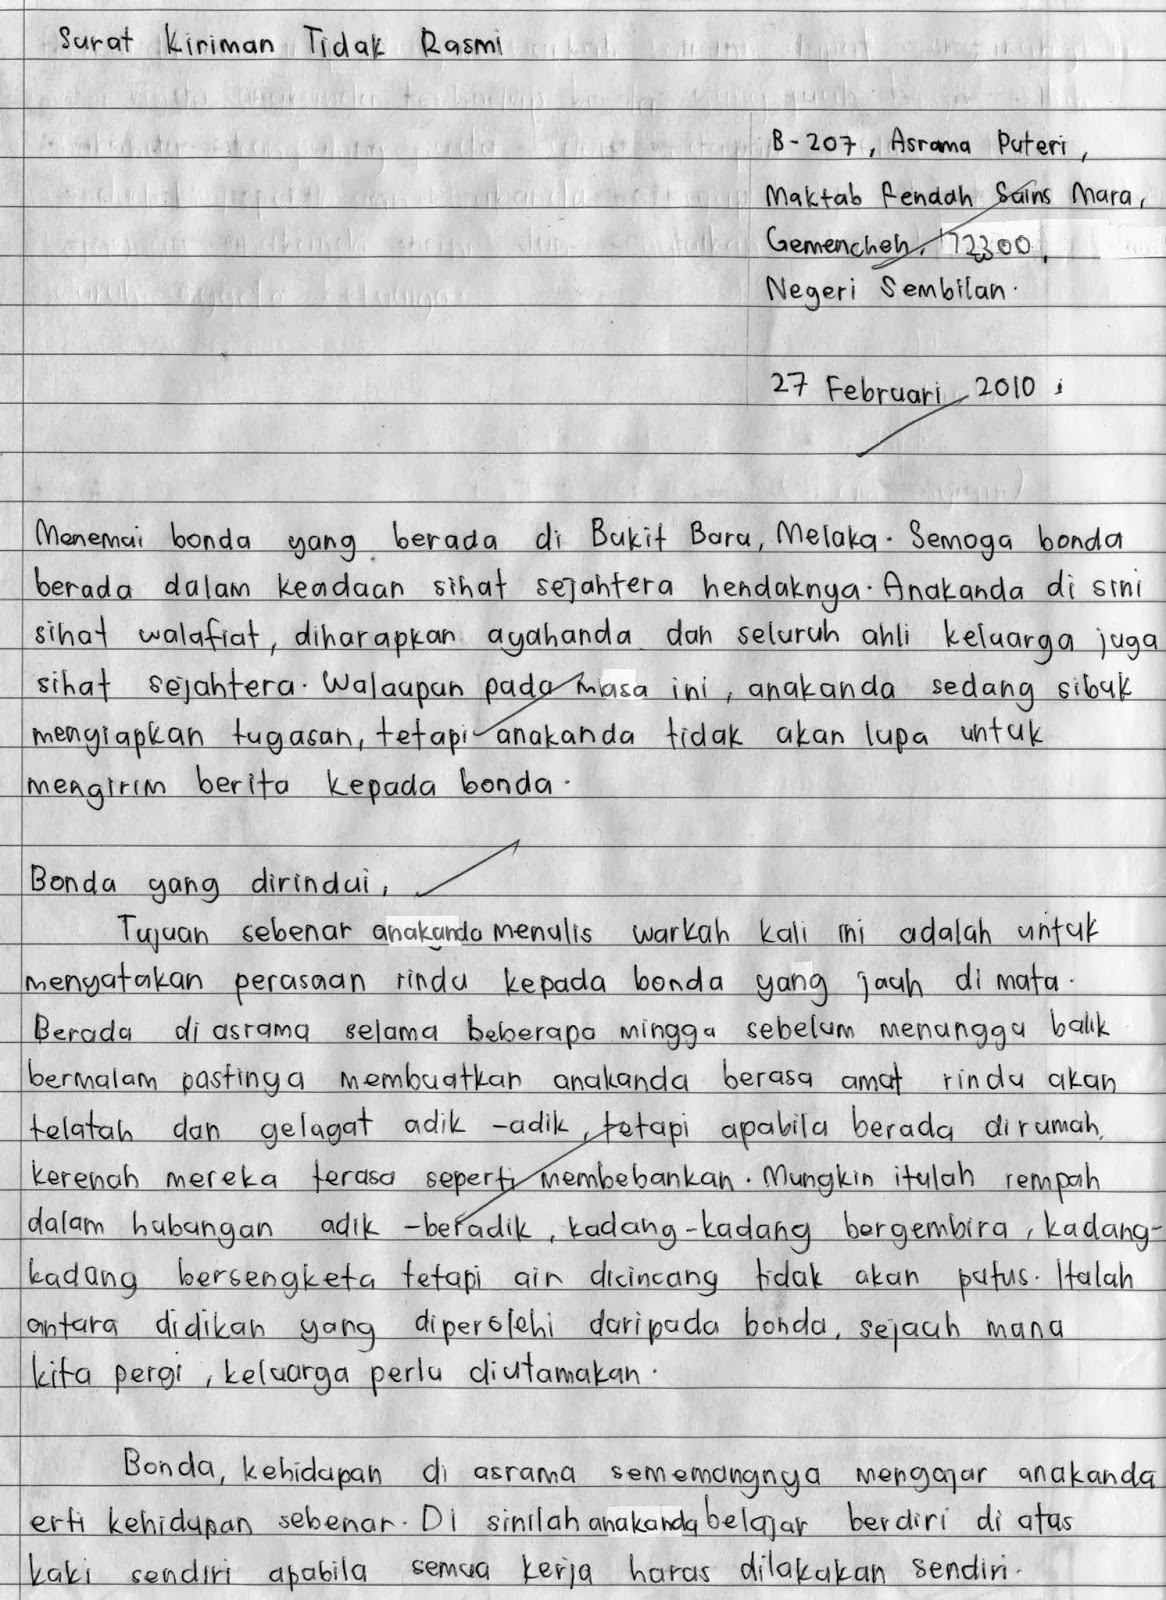 tamil essay spm 4 t m t pπ m k modul kecemerlangan pmr bahasa tamil 2012  from  digitalessaynet and picked a writer to write my essays for me.